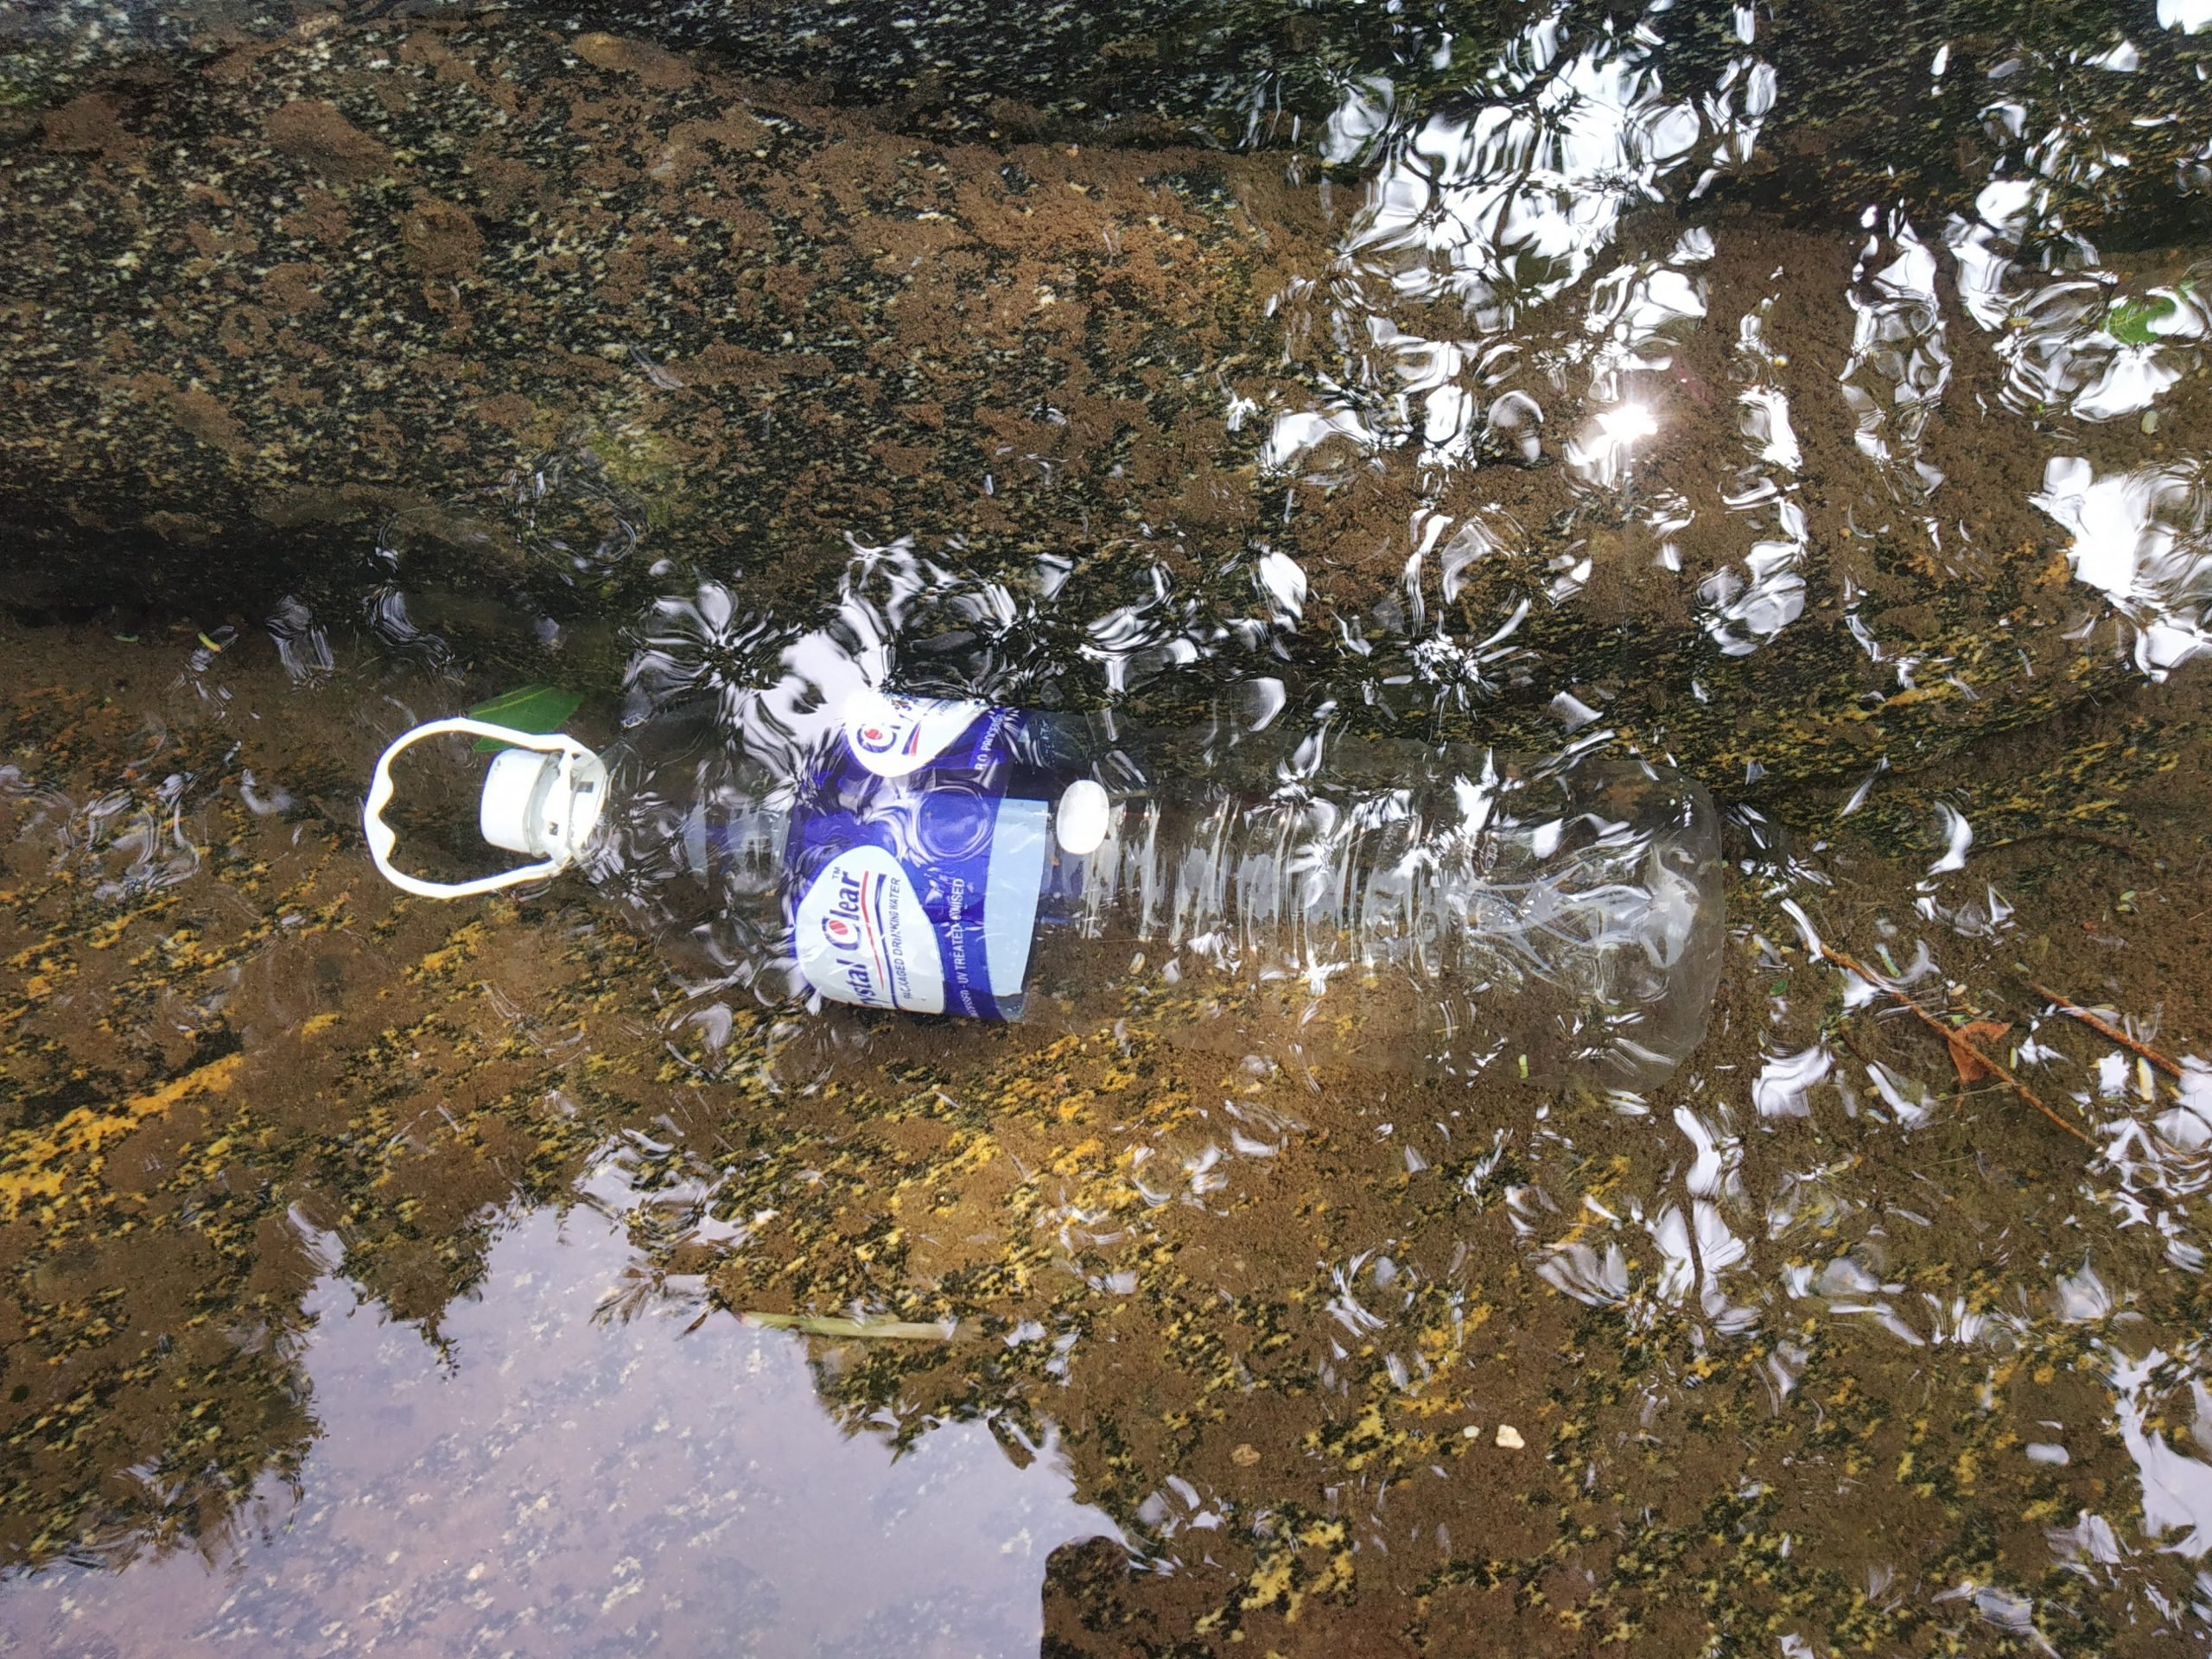 Plastic bottle in the pond